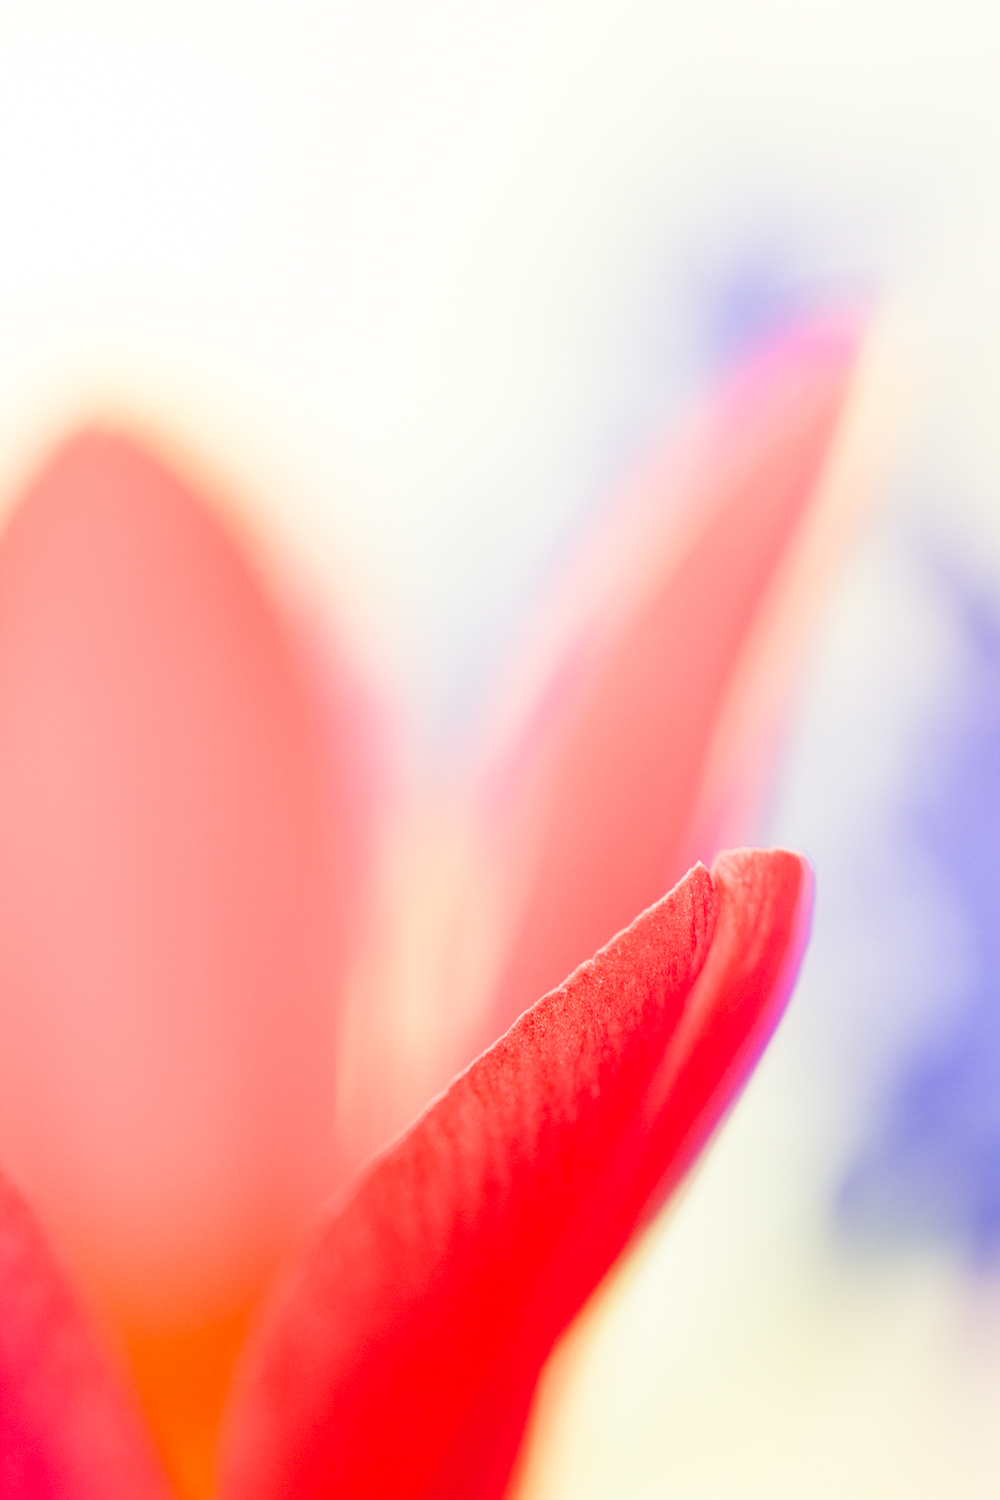 macro flower bokeh photography tulip - Four Ways to Generate Stunning Bokeh in Your Images